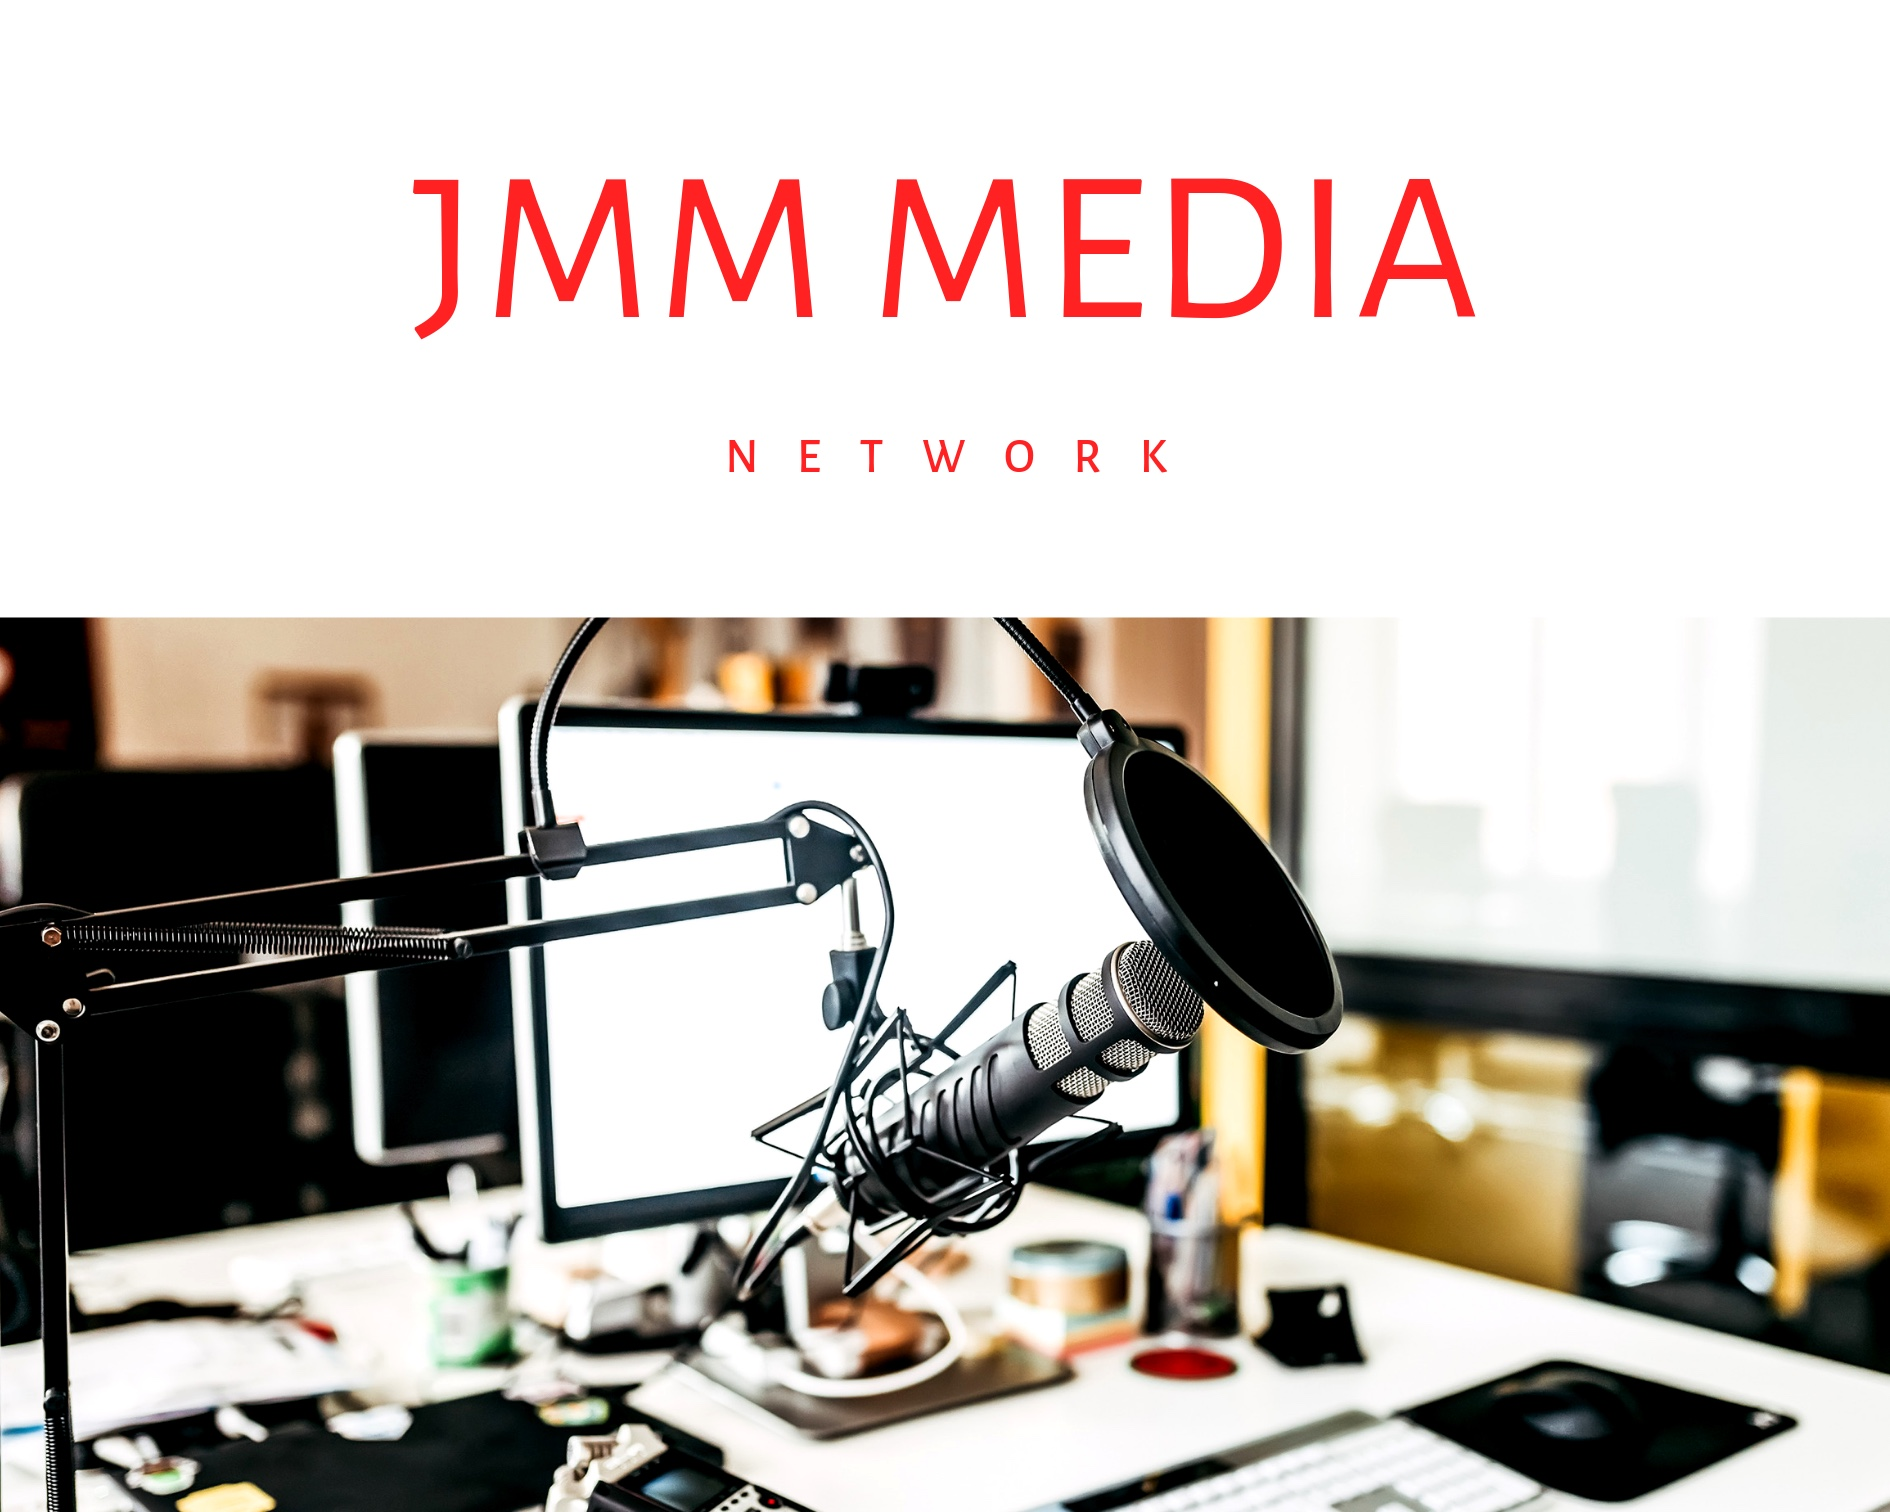 JMM MEDIA Productions: Podcasts/Vlogs/Audio&Visual   Our studio & production Team can provide all the support to produce or assist with all elements from audio & visual for video or podcast. Included elements: writing, editing, directing, and design.